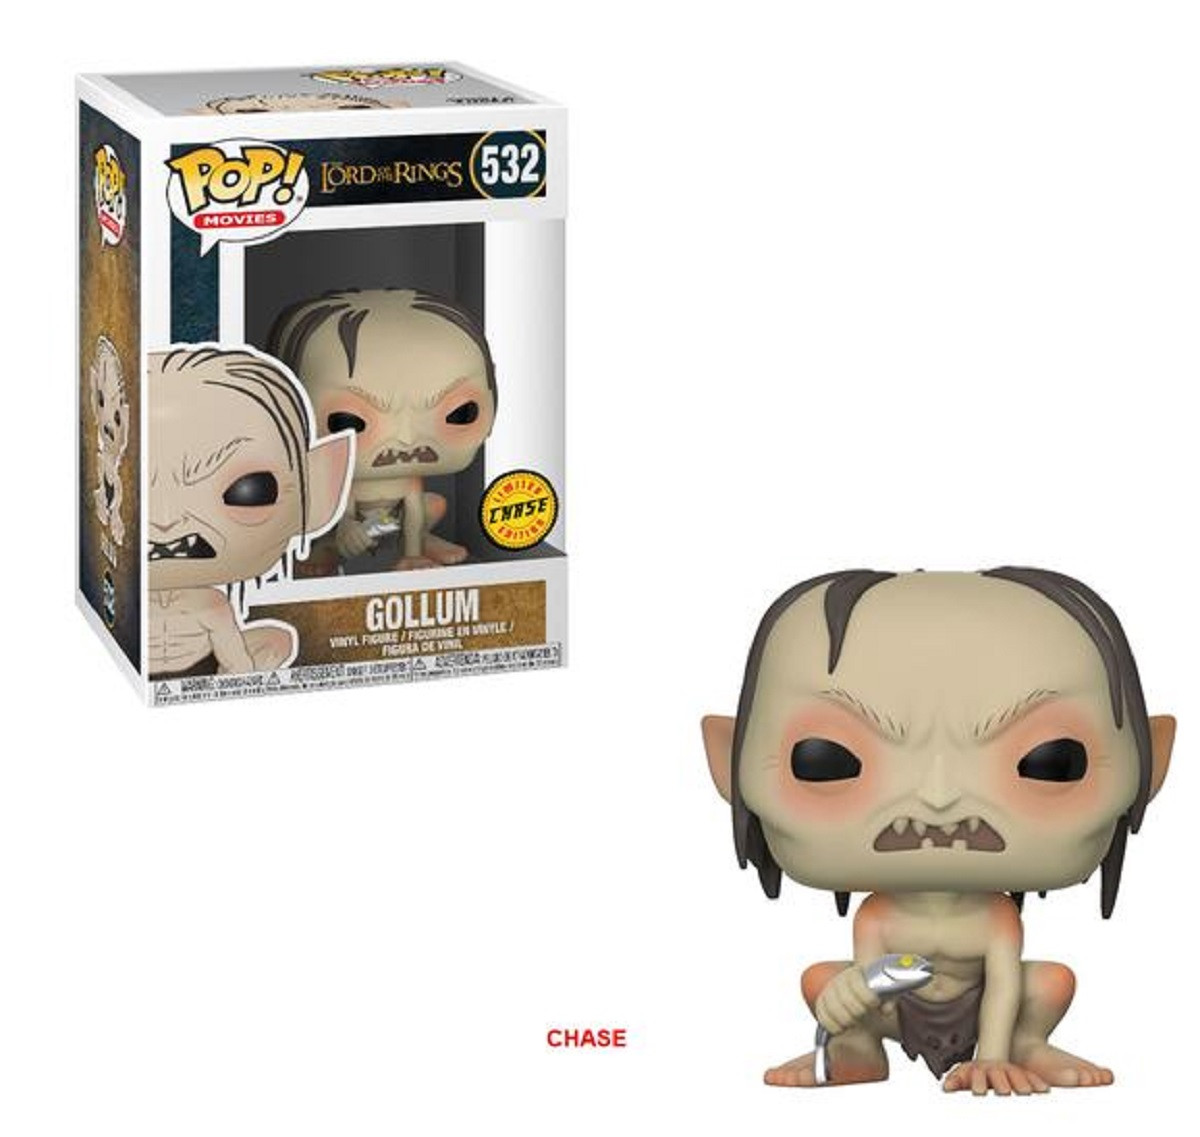 Funko Pop! Movies Lord of the Rings Hobbit Gollum Vinyl Figure Chase